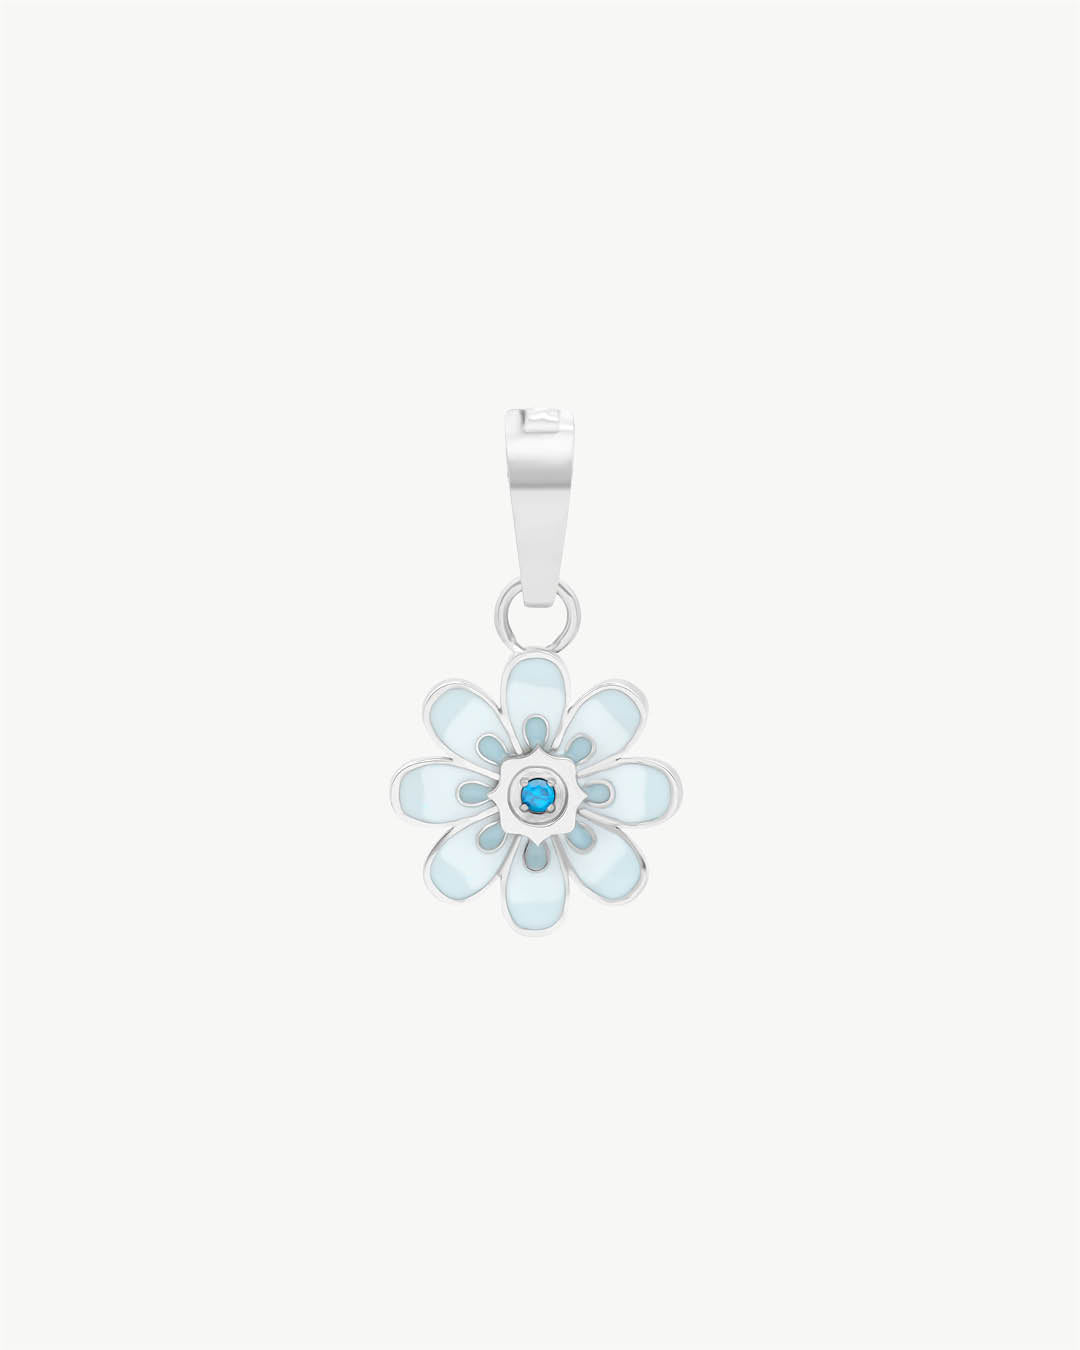 Pendentif Oopsy Daisy Blue, argent